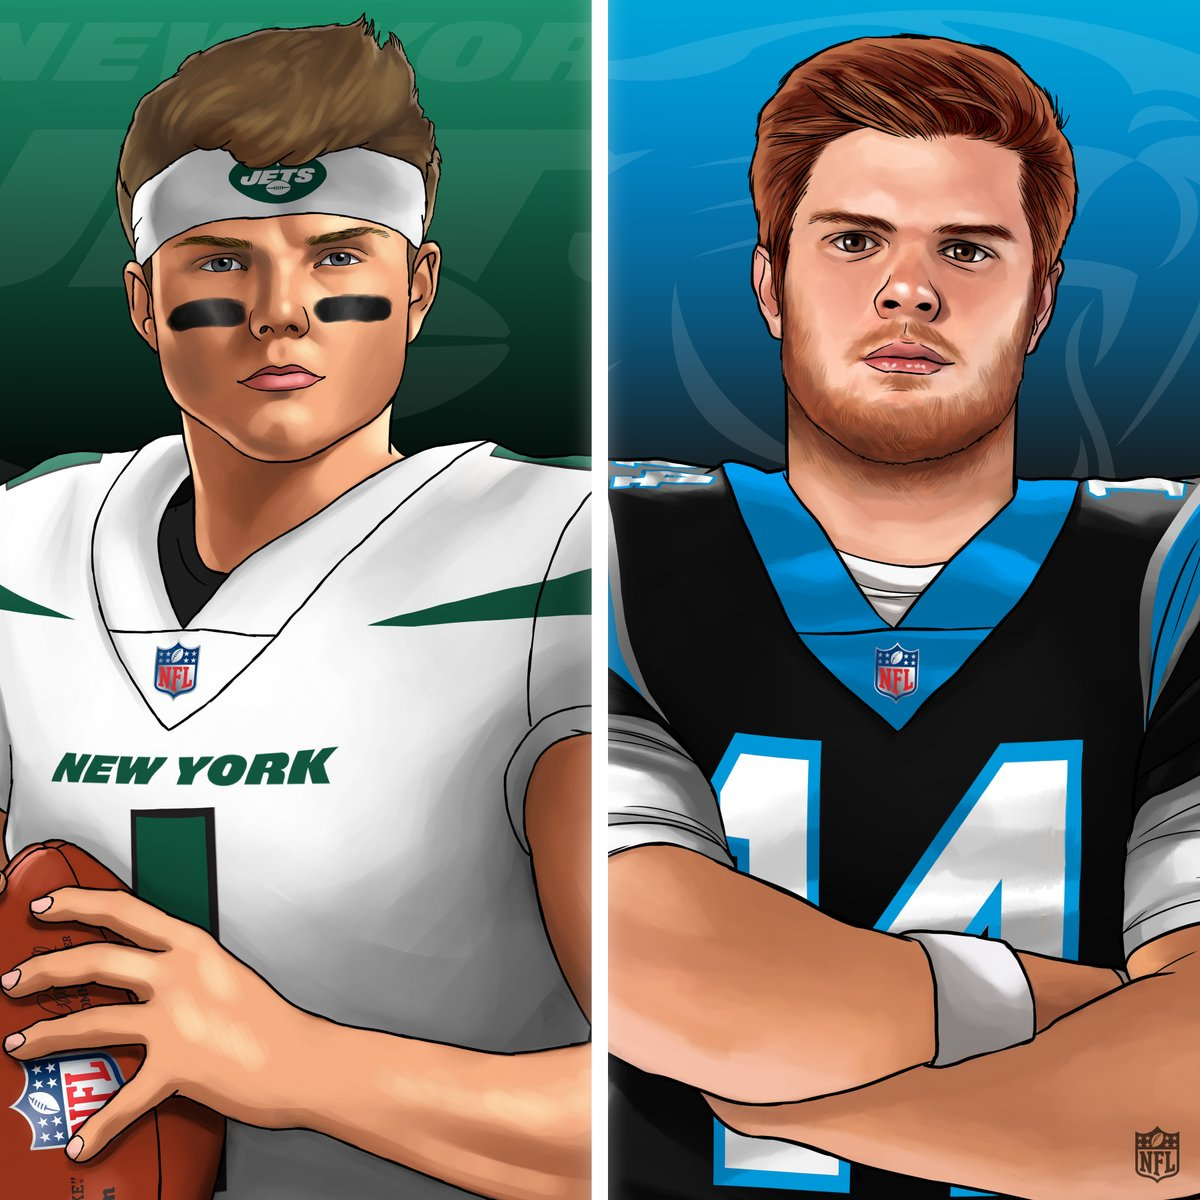 The debut of @ZachWilson vs. Sam Darnold in his new threads. Who is winning this Week 1 game?  📺: #NYJvsCAR -- Tomorrow at 1pm ET on CBS 📱: NFL app